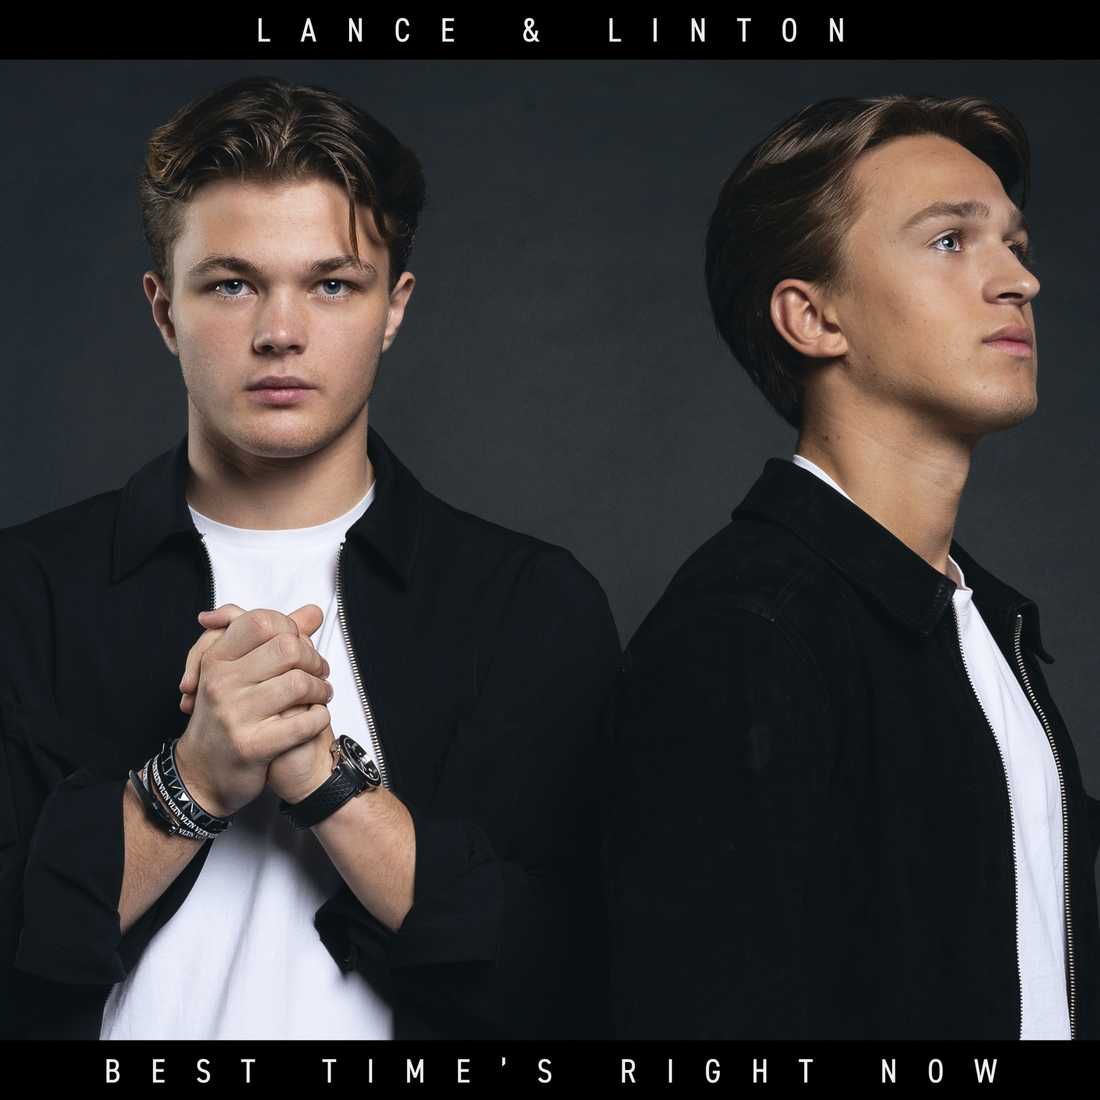 "Lance & Lintons debutsingel ""Best time's right now"" släpps 21 juni."